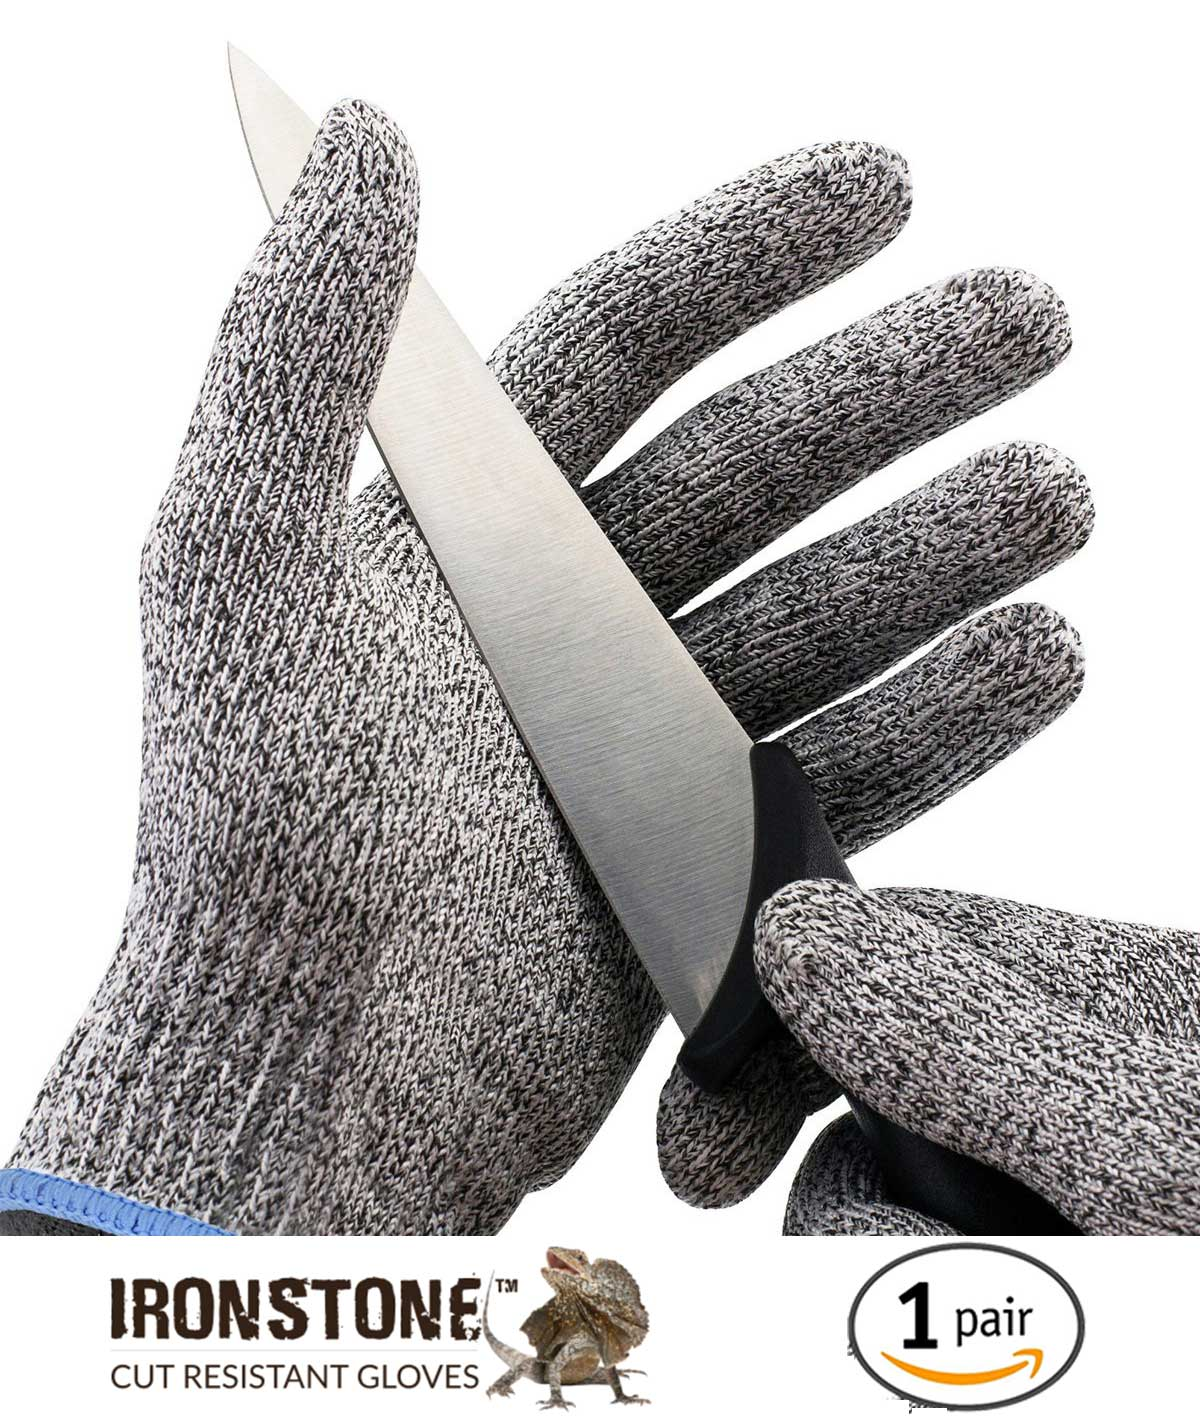 ironstone-cut-ressistance-gloves